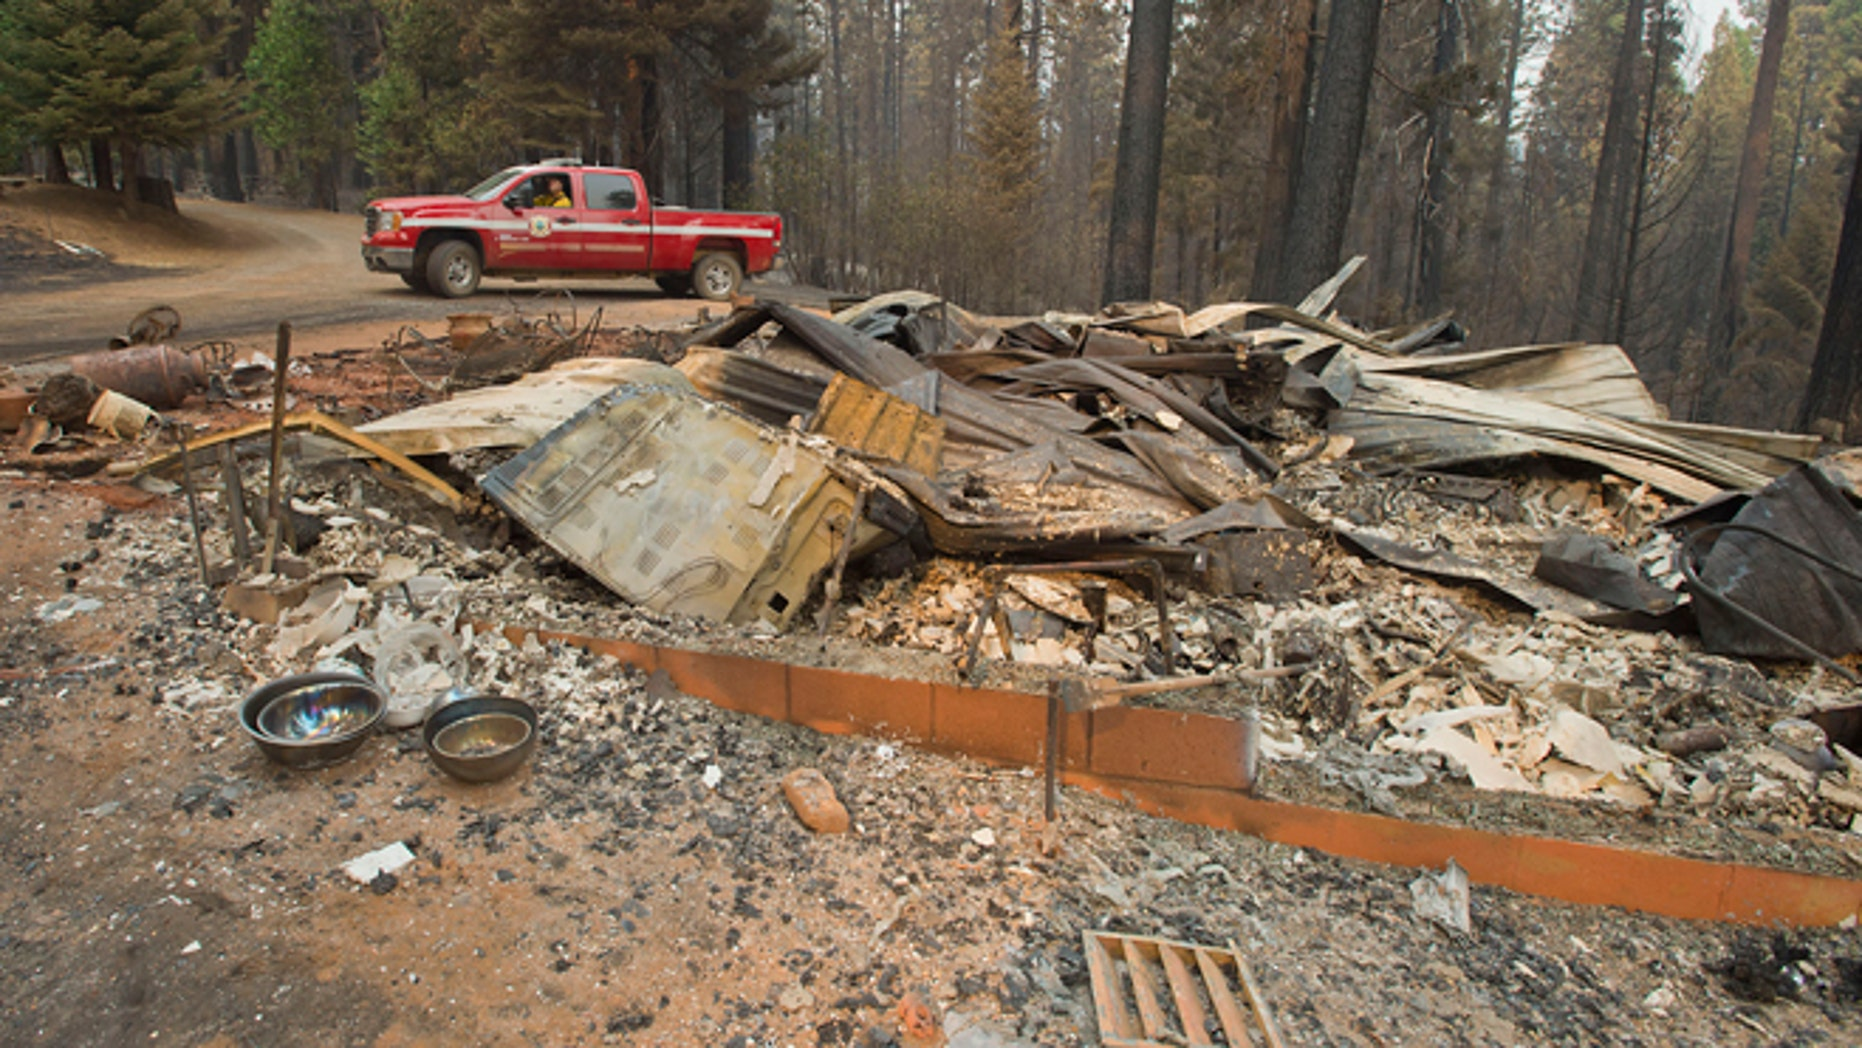 In a Friday, Sept. 19, 2014 file photo, a truck passes one of several homes that burned in the recent King fire near Icehouse in El Dorado County, Calif. Officials said Sunday, Sept. 21, 2014, that nearly three-dozen structures were destroyed in the massive Northern California wildfire that continues to spread more than a week after it started.